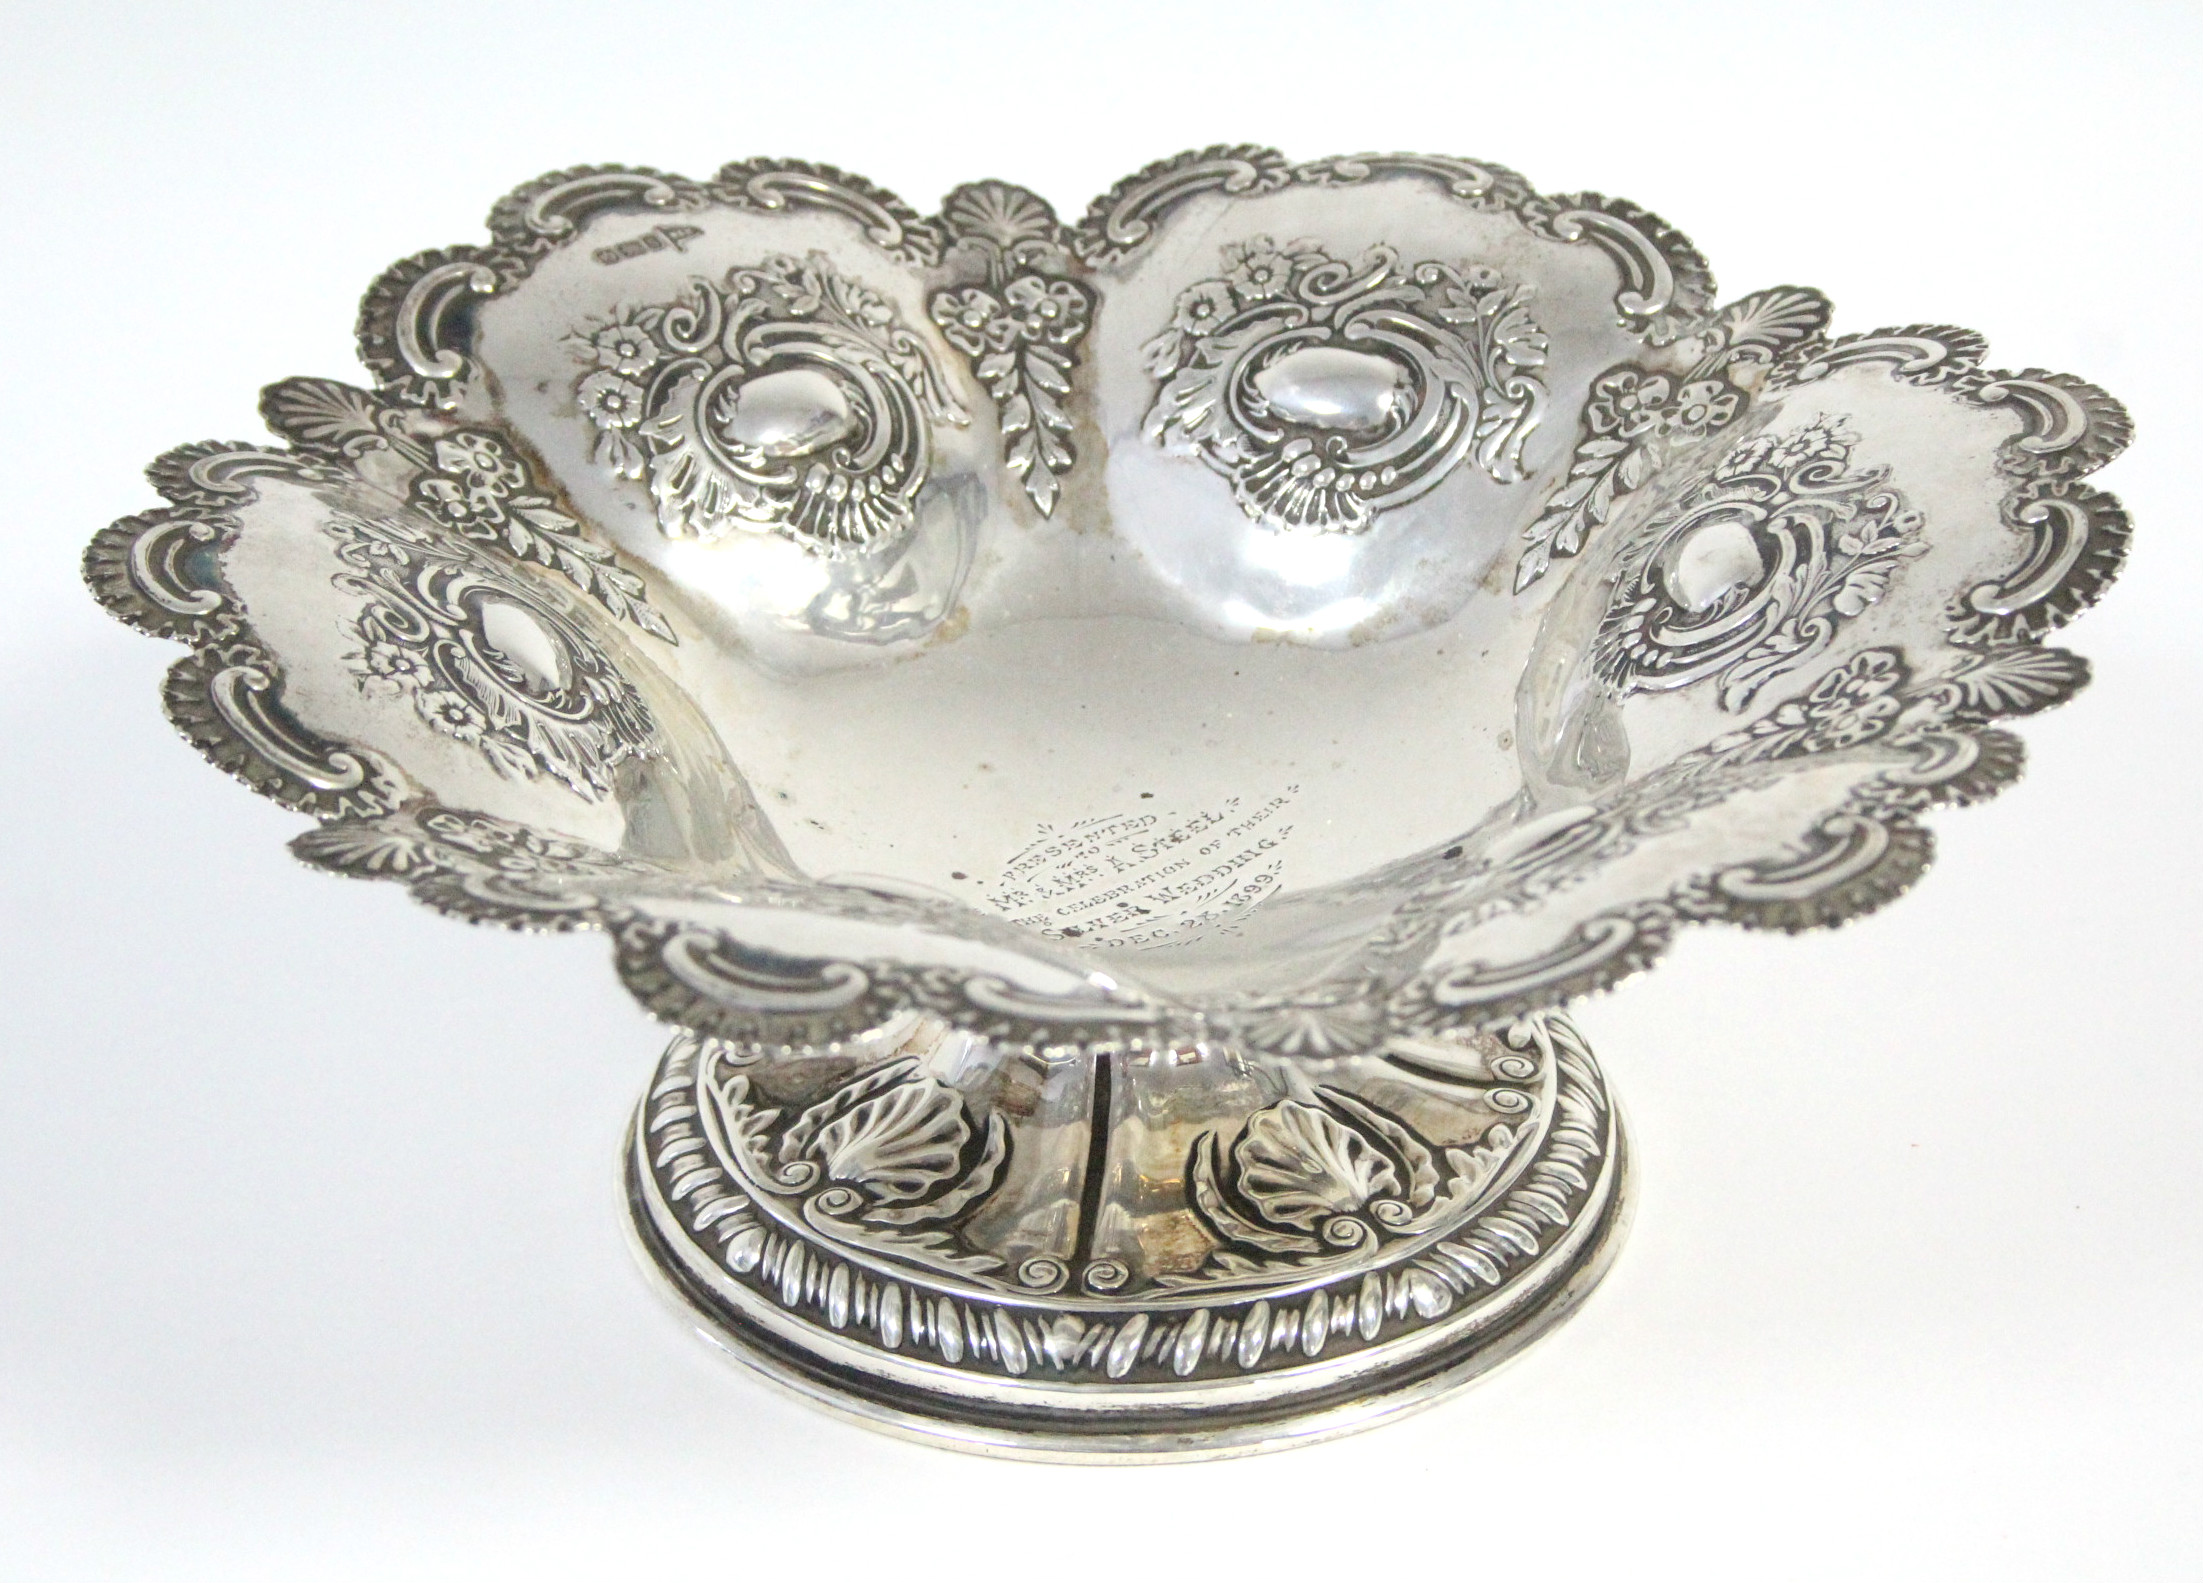 Lot 30 - A late Victorian silver embossed sweetmeat dish of lobed circular form with scalloped-edge &